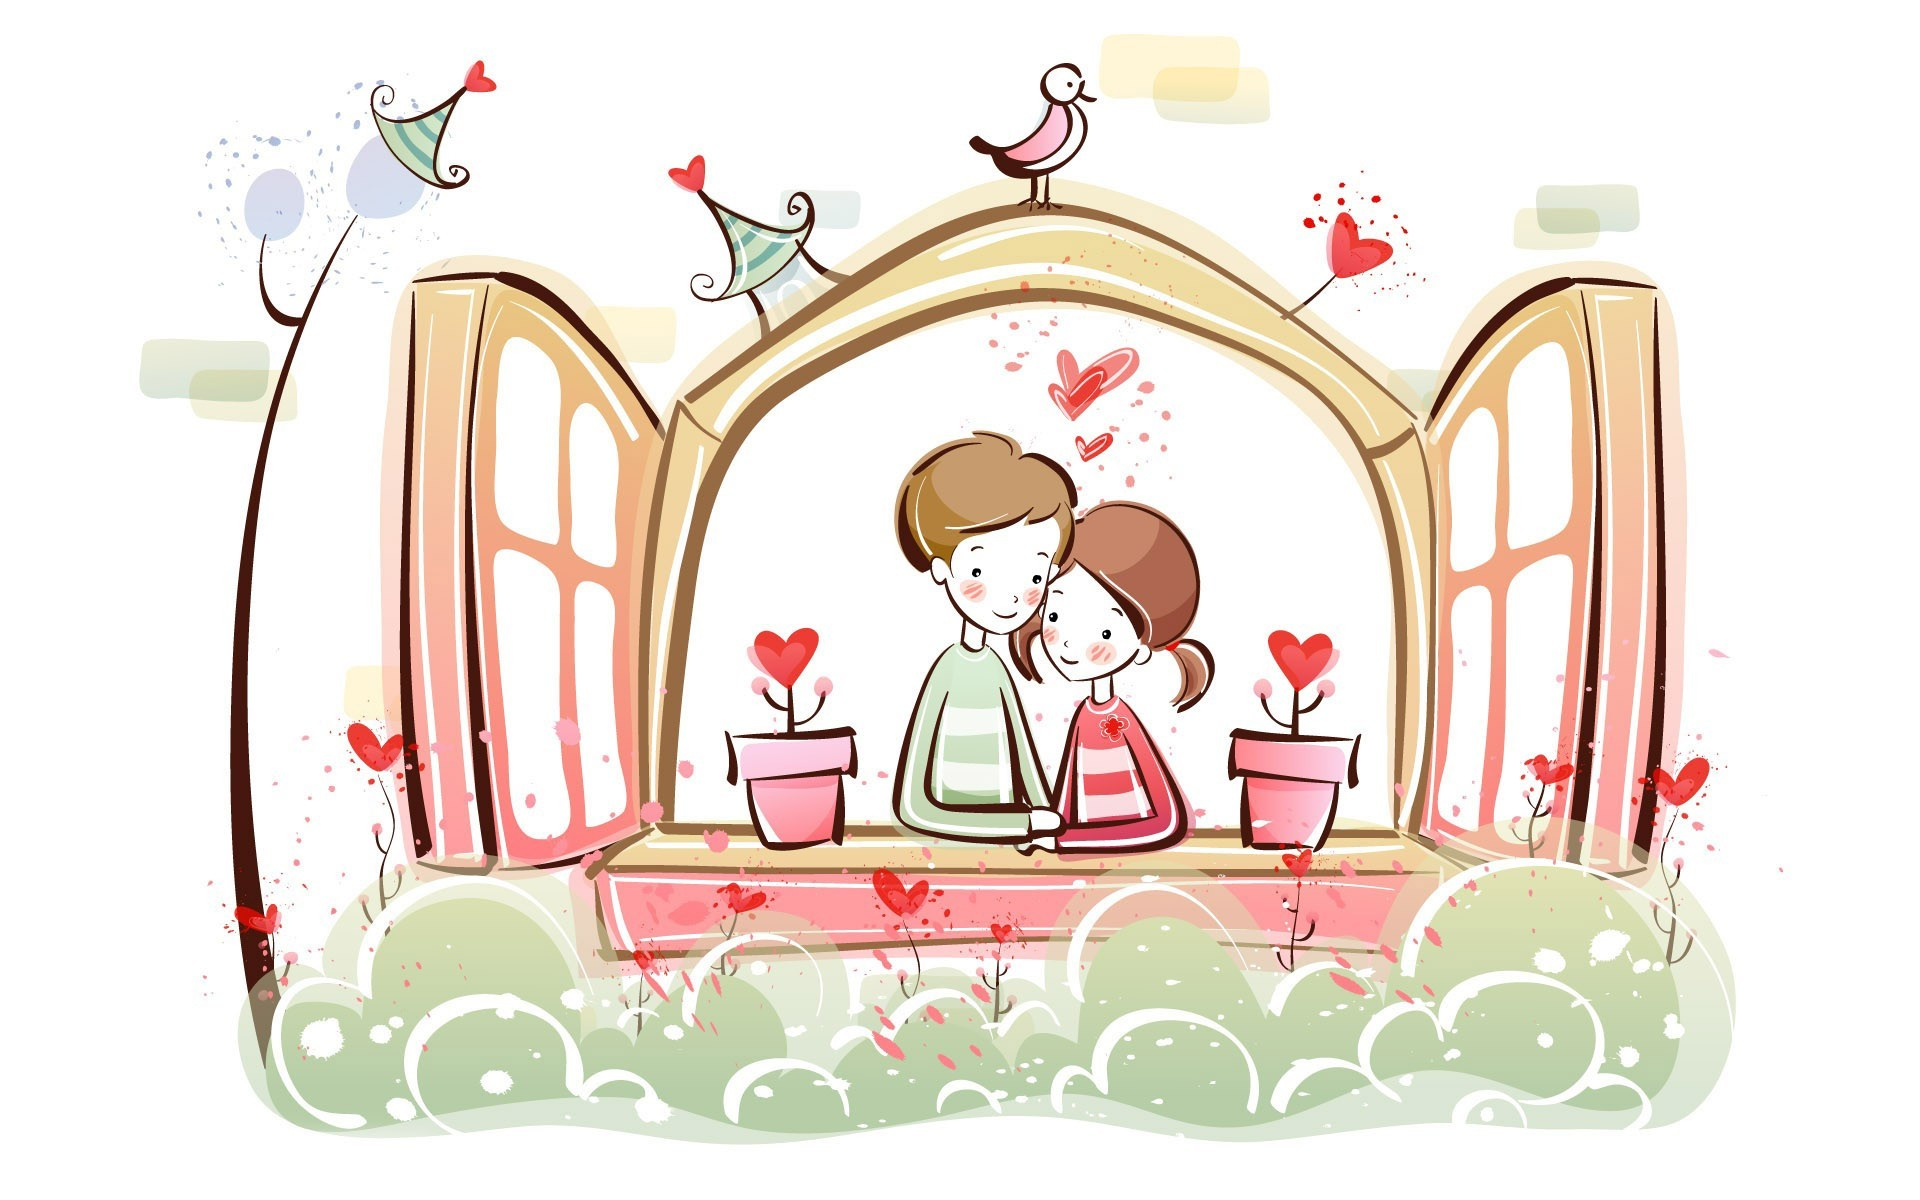 Love Wallpaper cartoon Hd : cartoon Love Wallpaper - Wallpaper, High Definition, High Quality, Widescreen